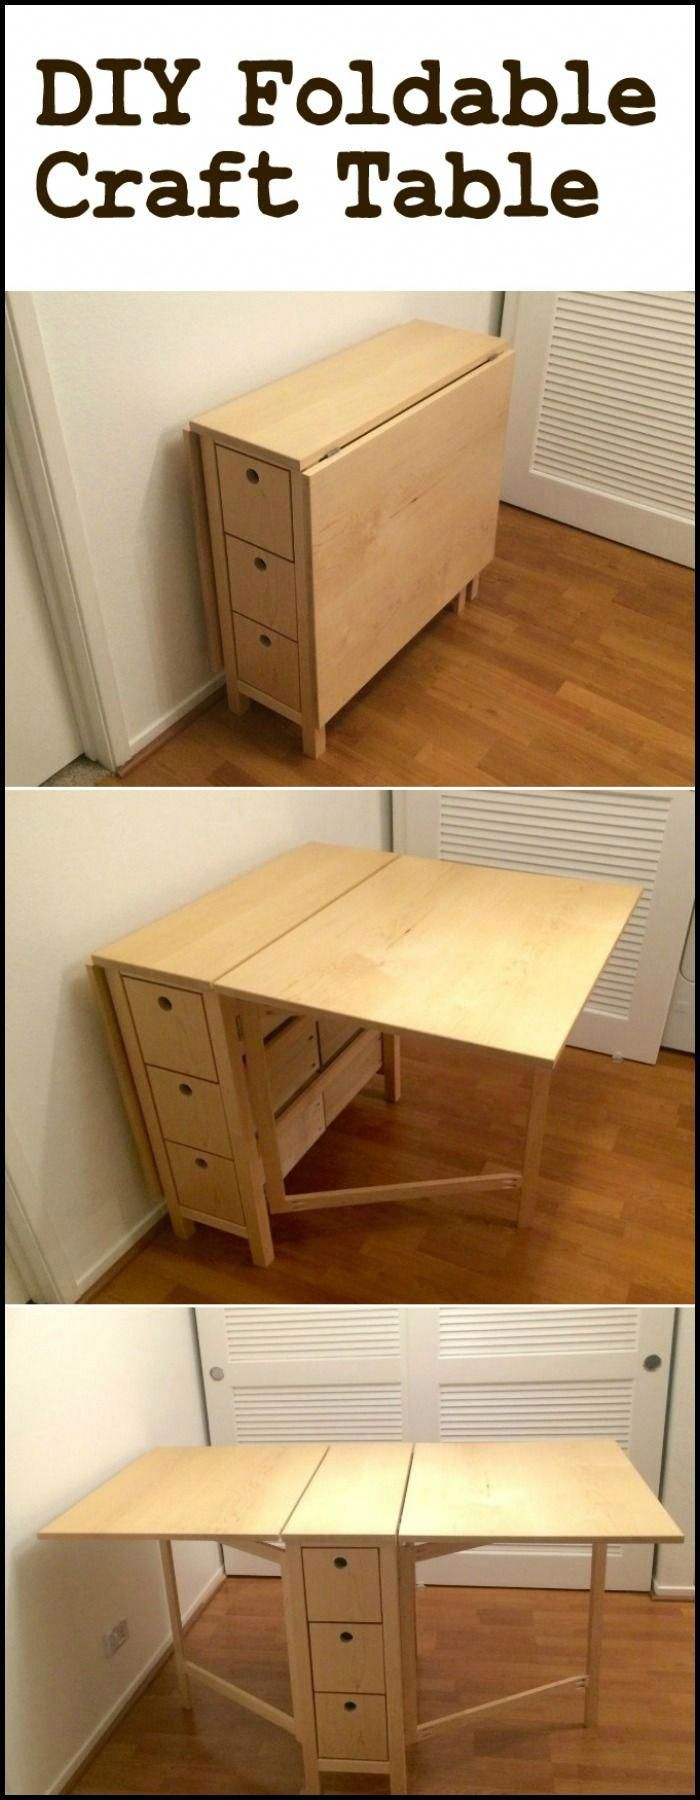 Save Space By Building Your Own Foldable Craft Table Diy Furniture Plans Diy Furniture Bedroom Diy Space Saving